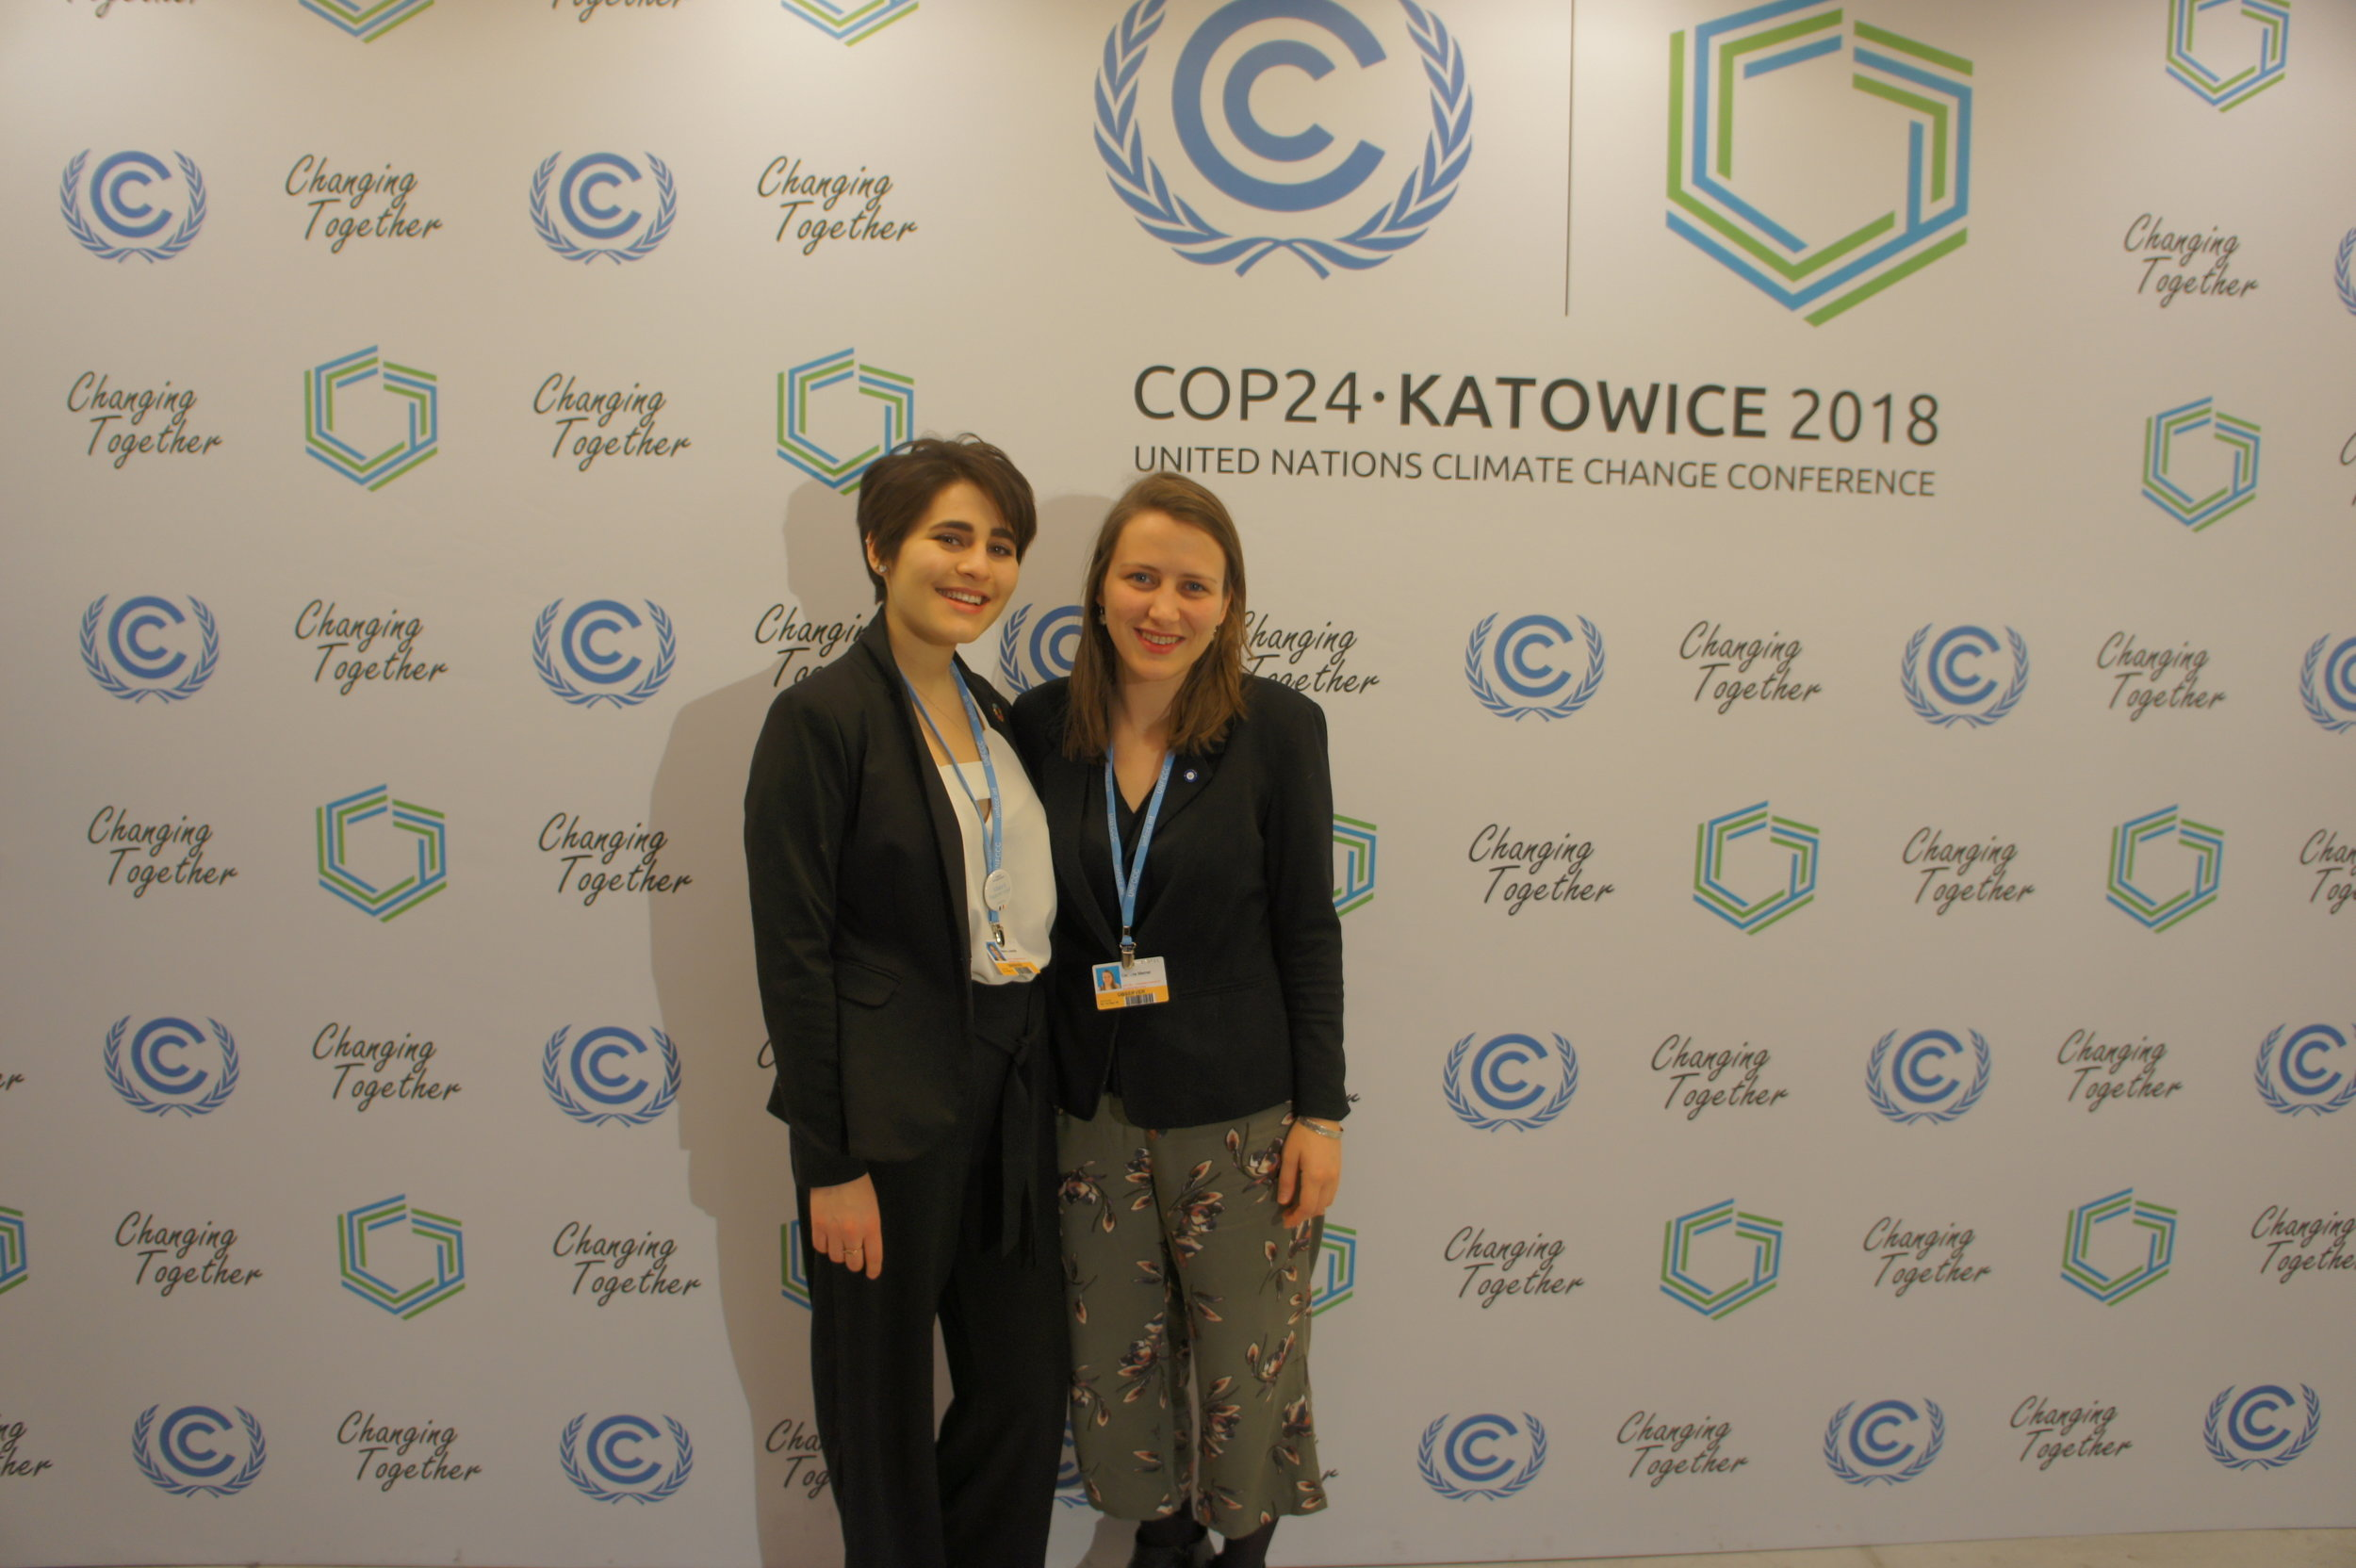 UNFCCC COP24 - With the BCCIC youth delegation, we helped to represent the voices of BC youth at the 24th United Nations Climate Change Summit.